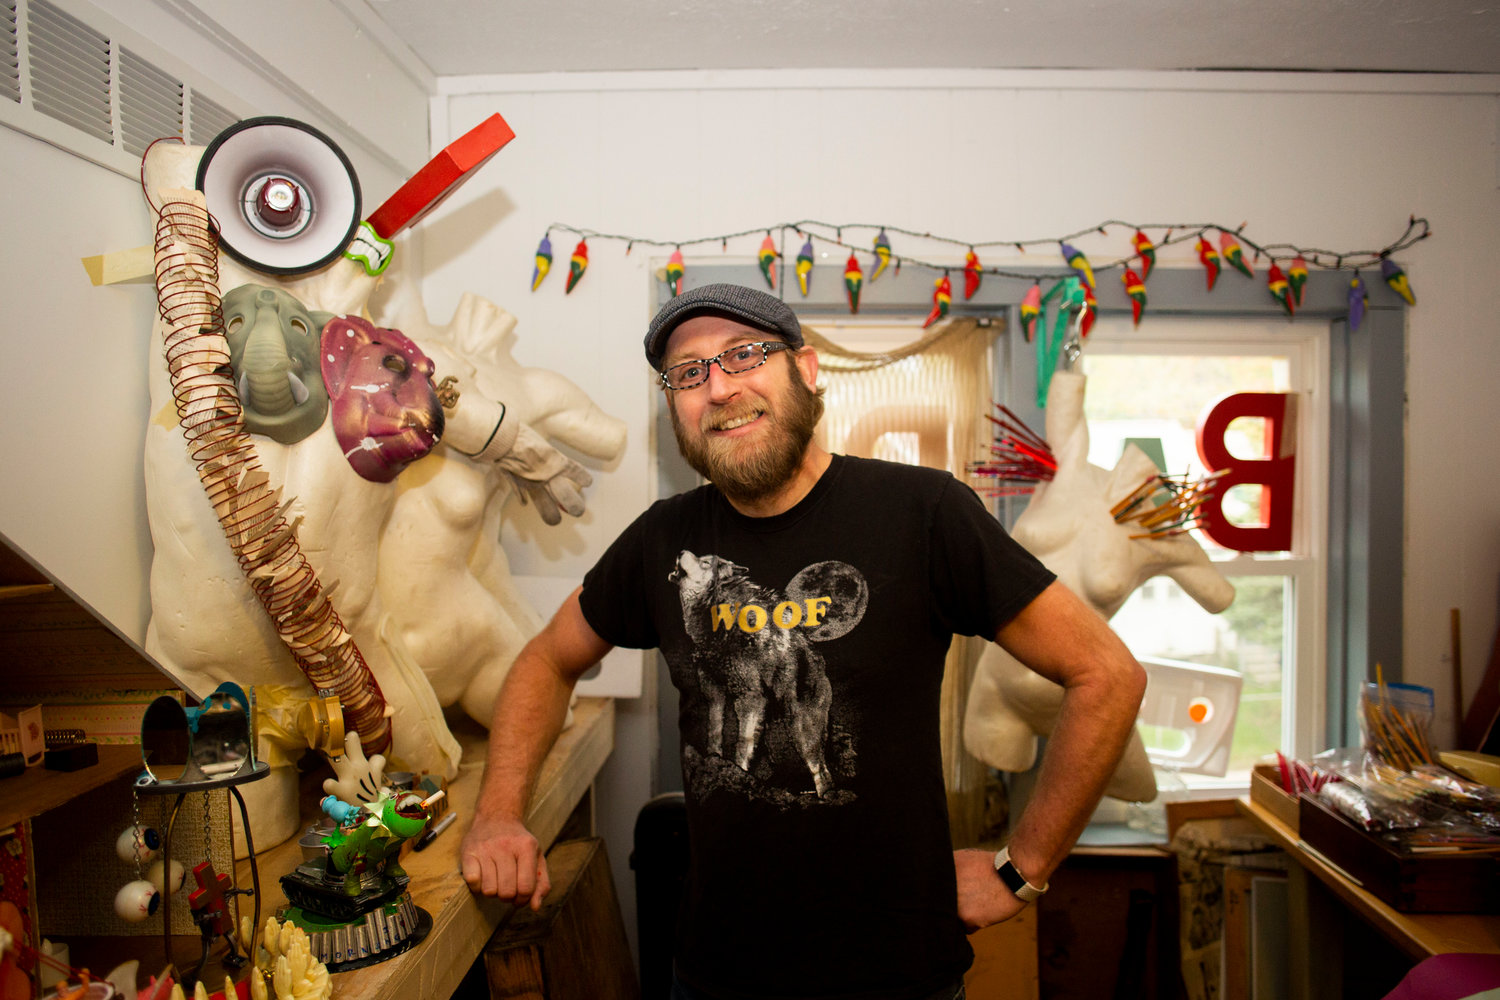 Todd Parkhill joined the Cedar Street Art Collective in 2017. He uses the space to store eccentric trinkets he collects while thrifting, he later turns into sculptures or multimedia paintings.